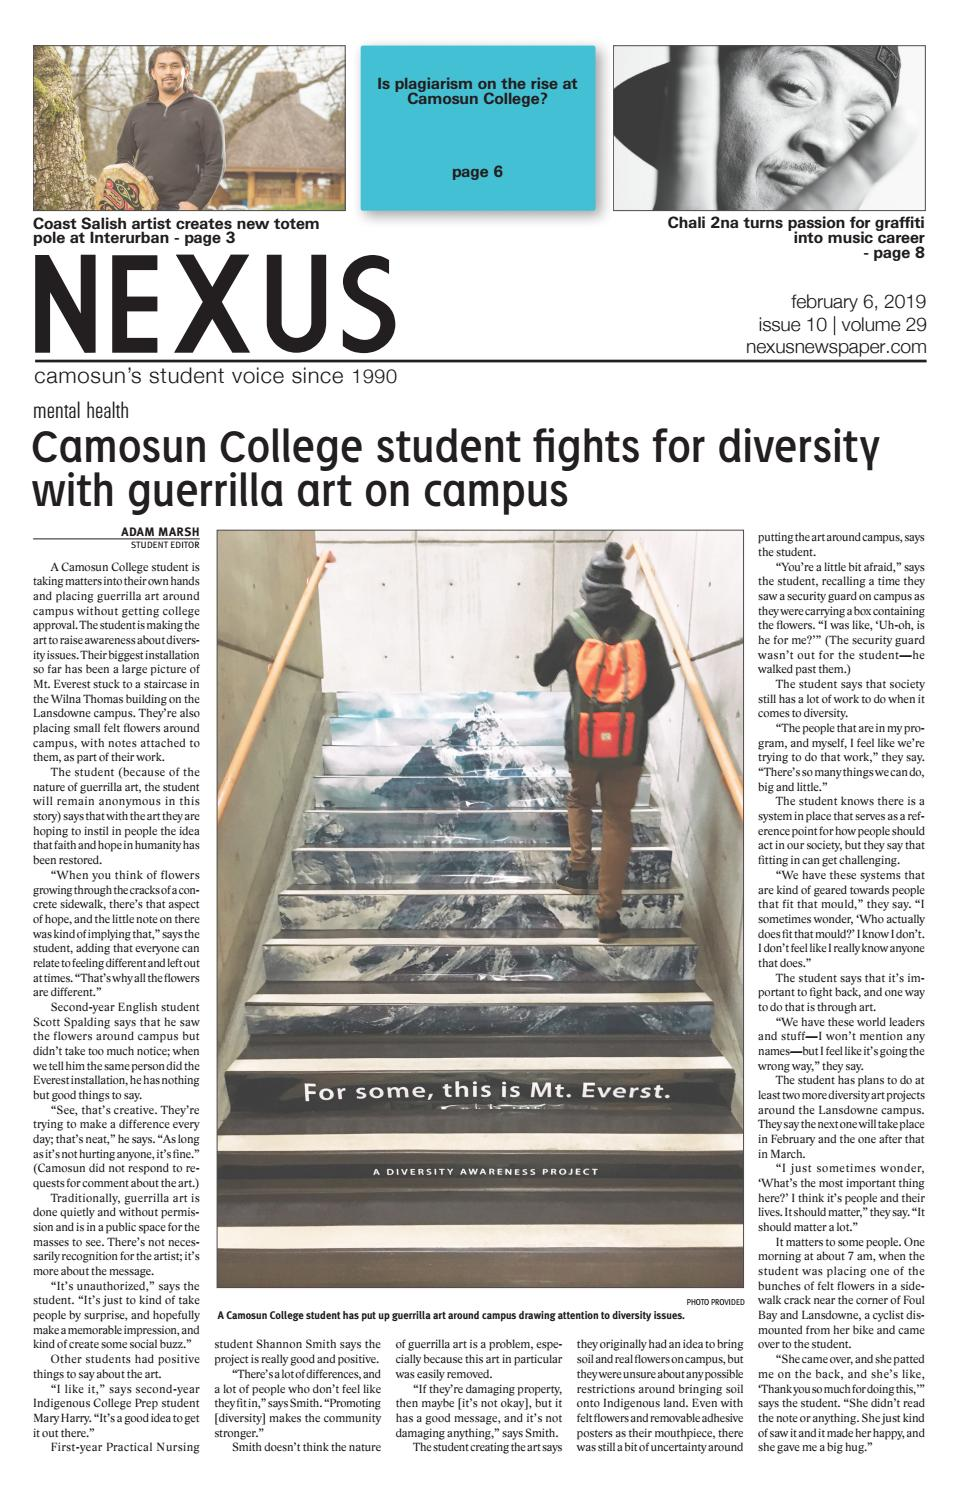 Nexus newspaper February 6, 2019 by Nexus - issuu